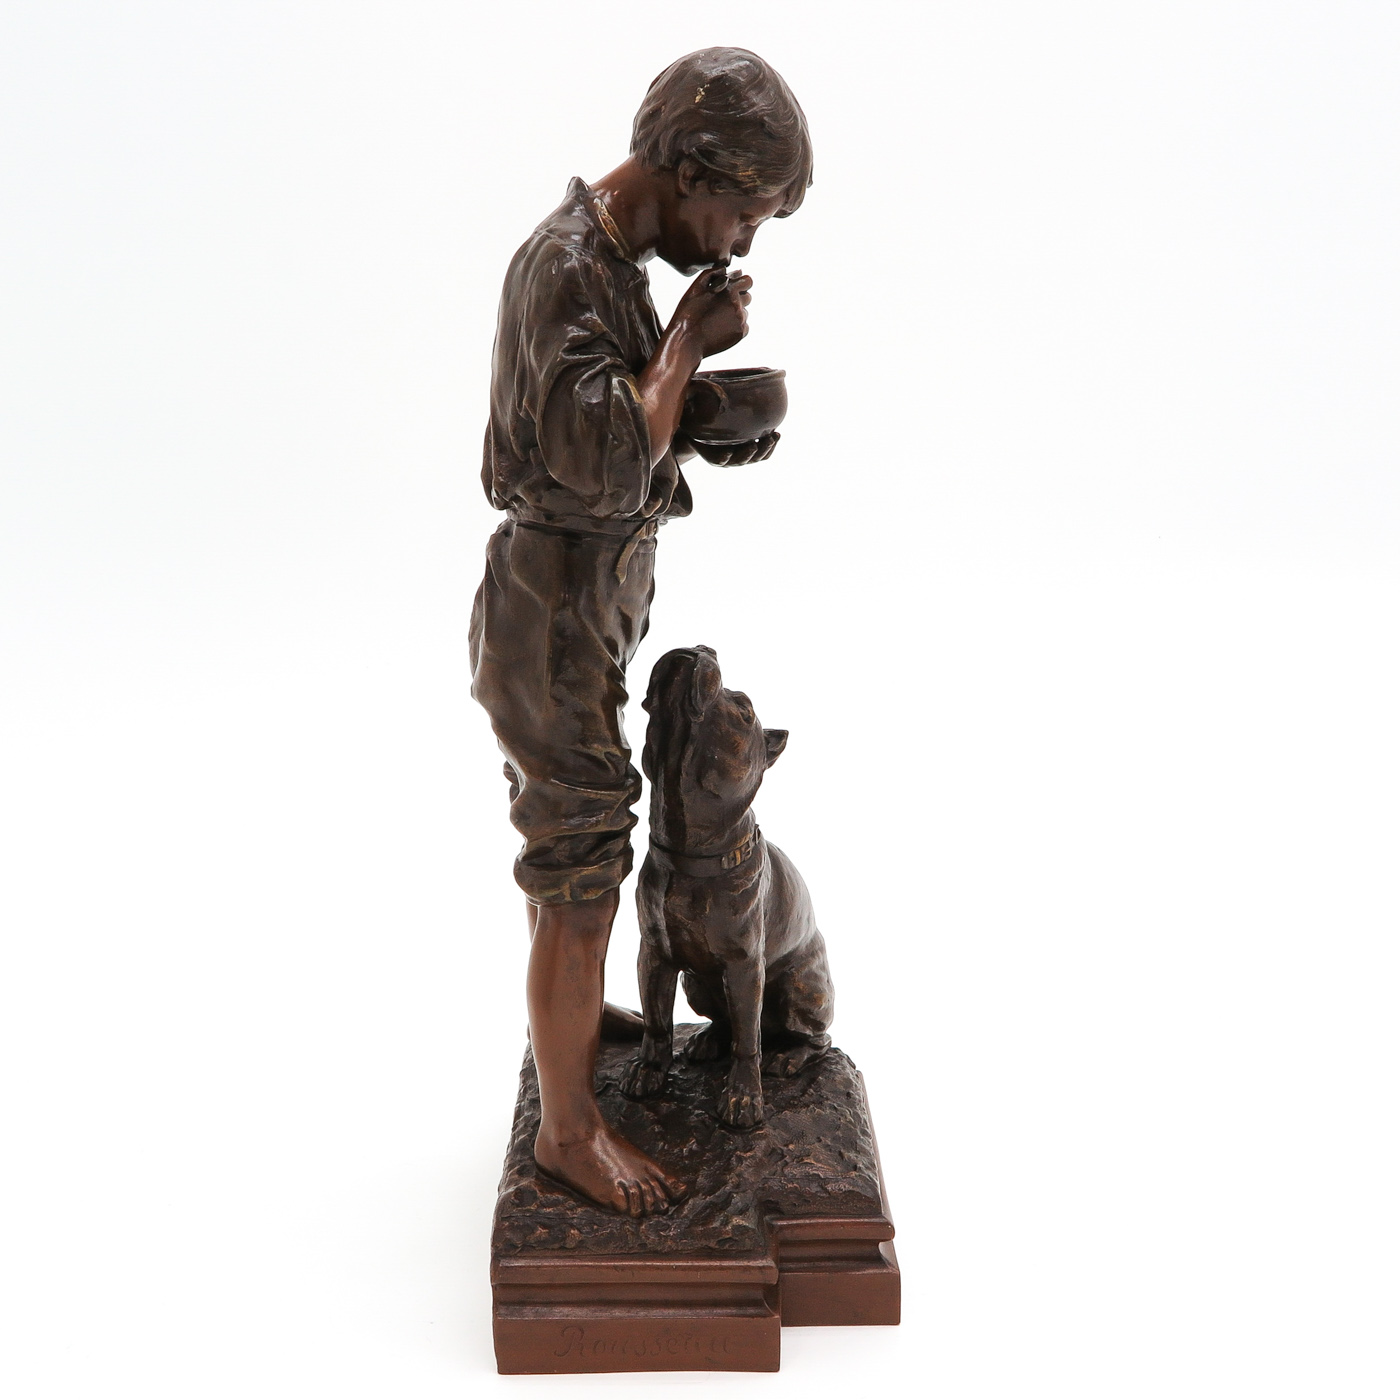 Lot 1056 - A Sculpture of Boy with Dog